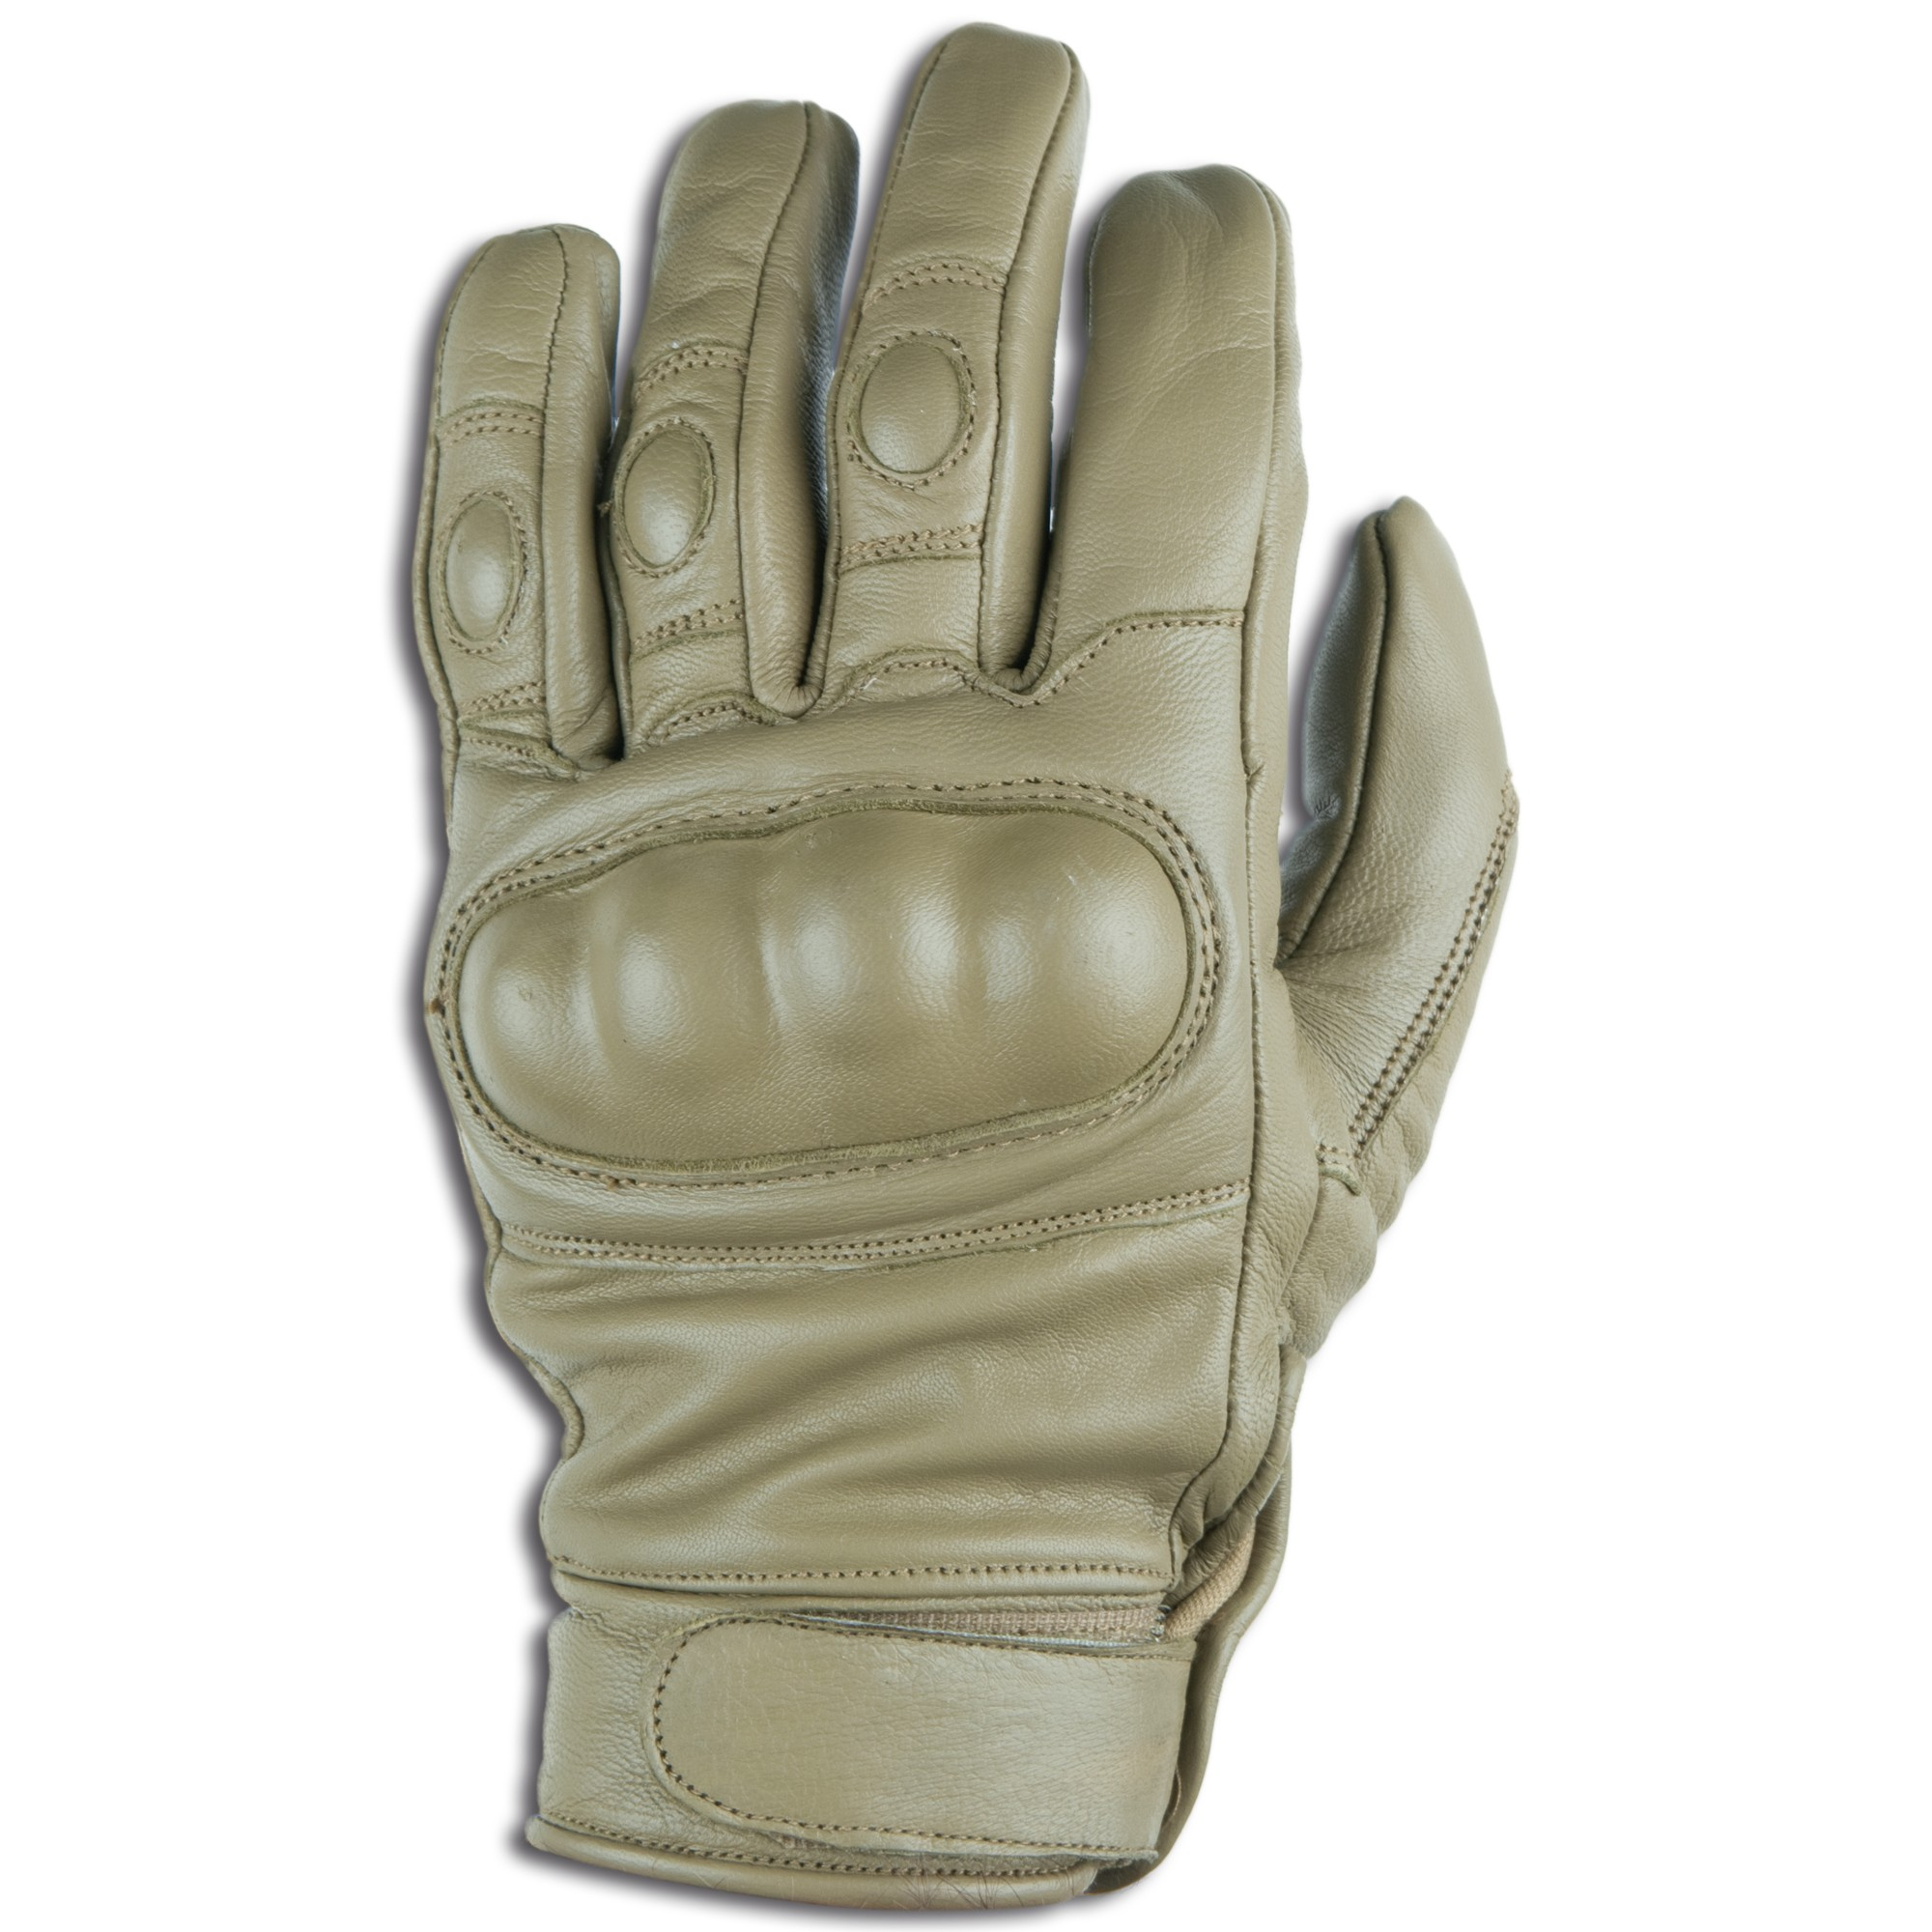 Gloves Tactical Pro Leather coyote